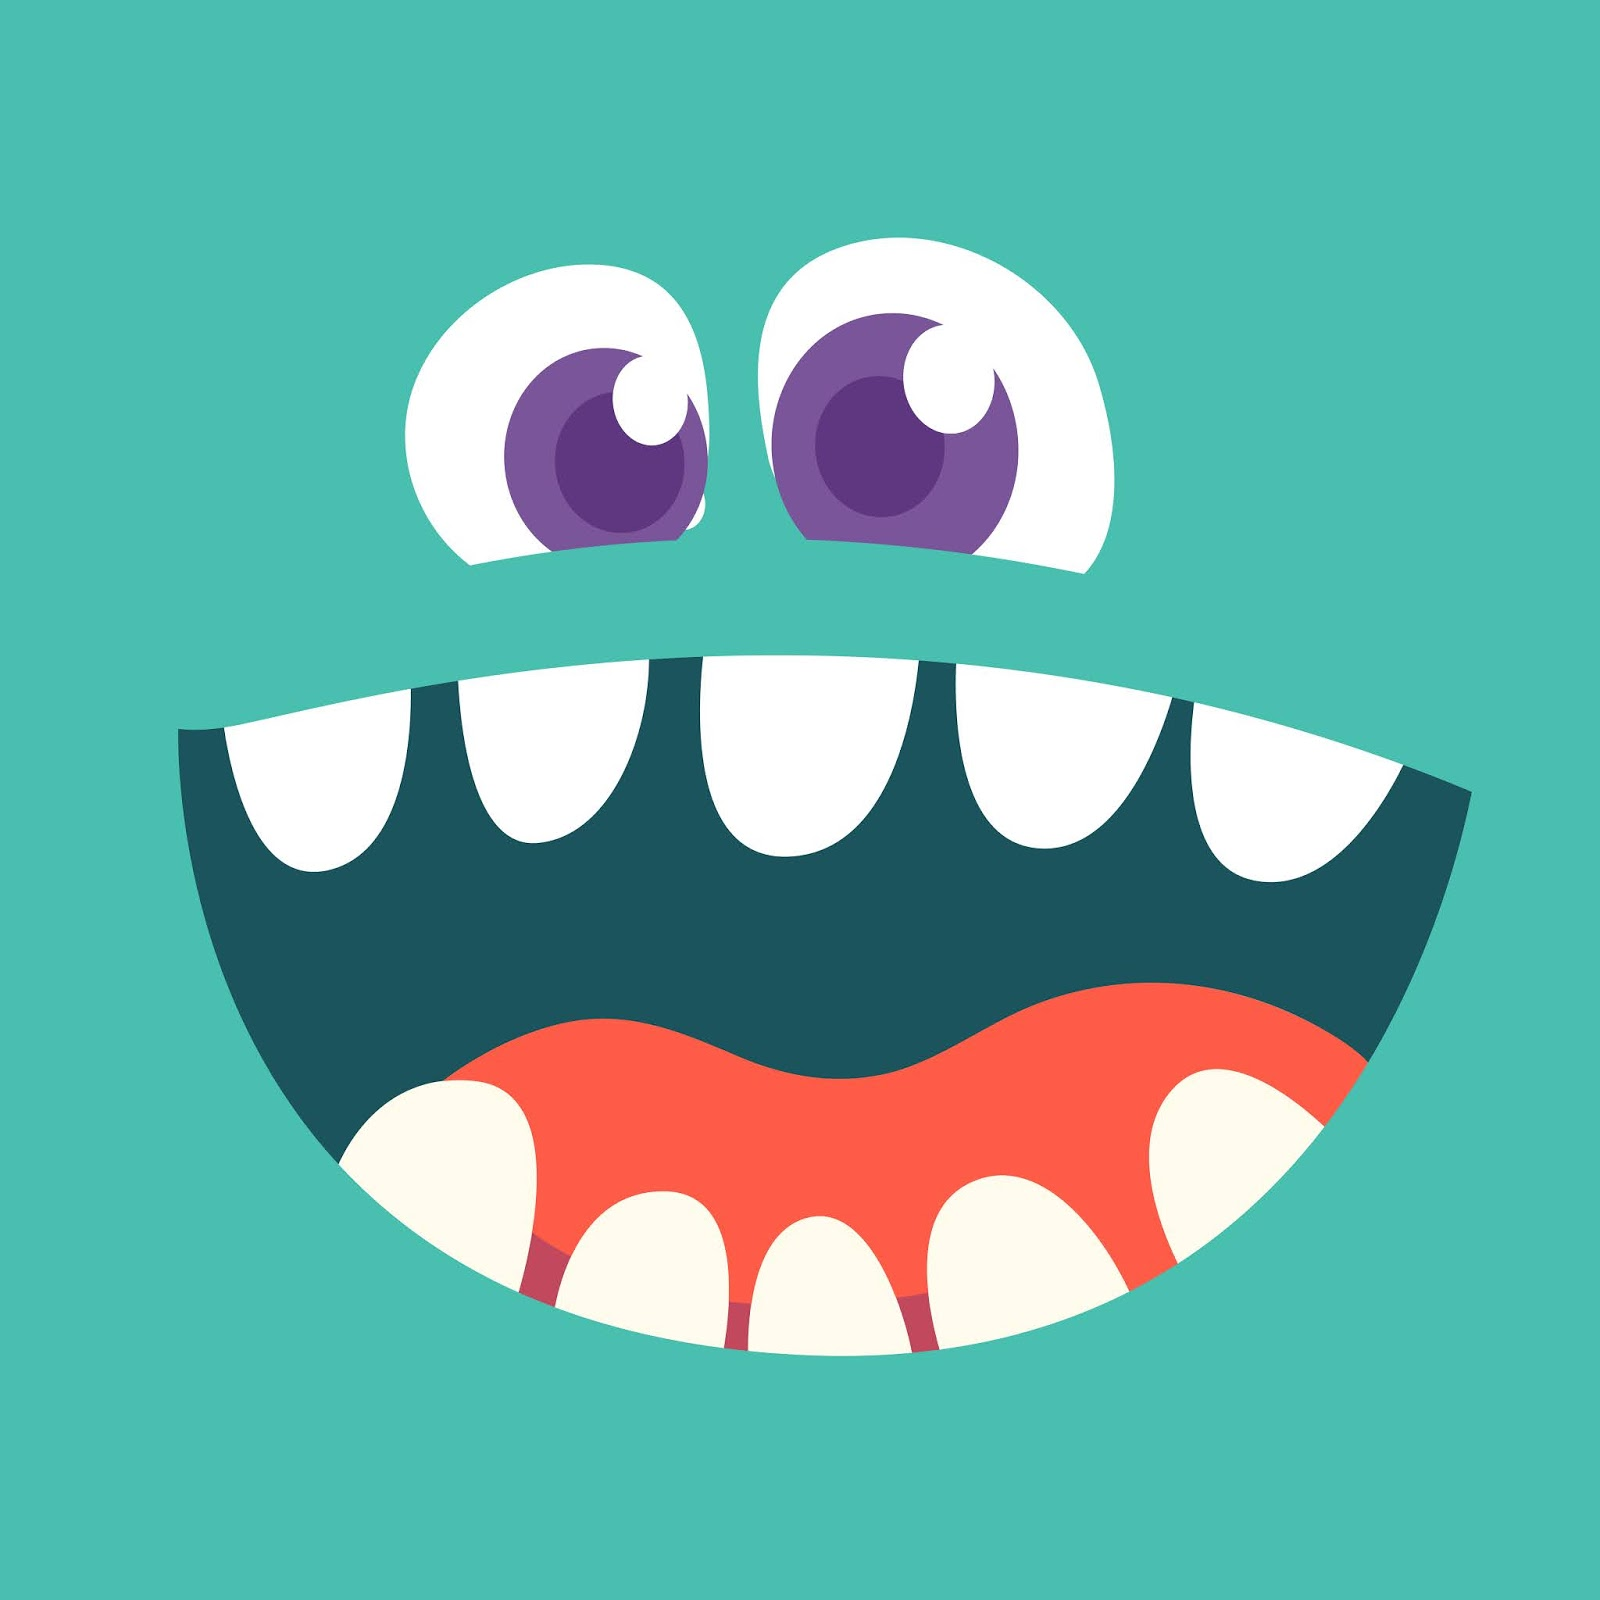 Cartoon Monster Face Avatar Free Download Vector CDR, AI, EPS and PNG Formats